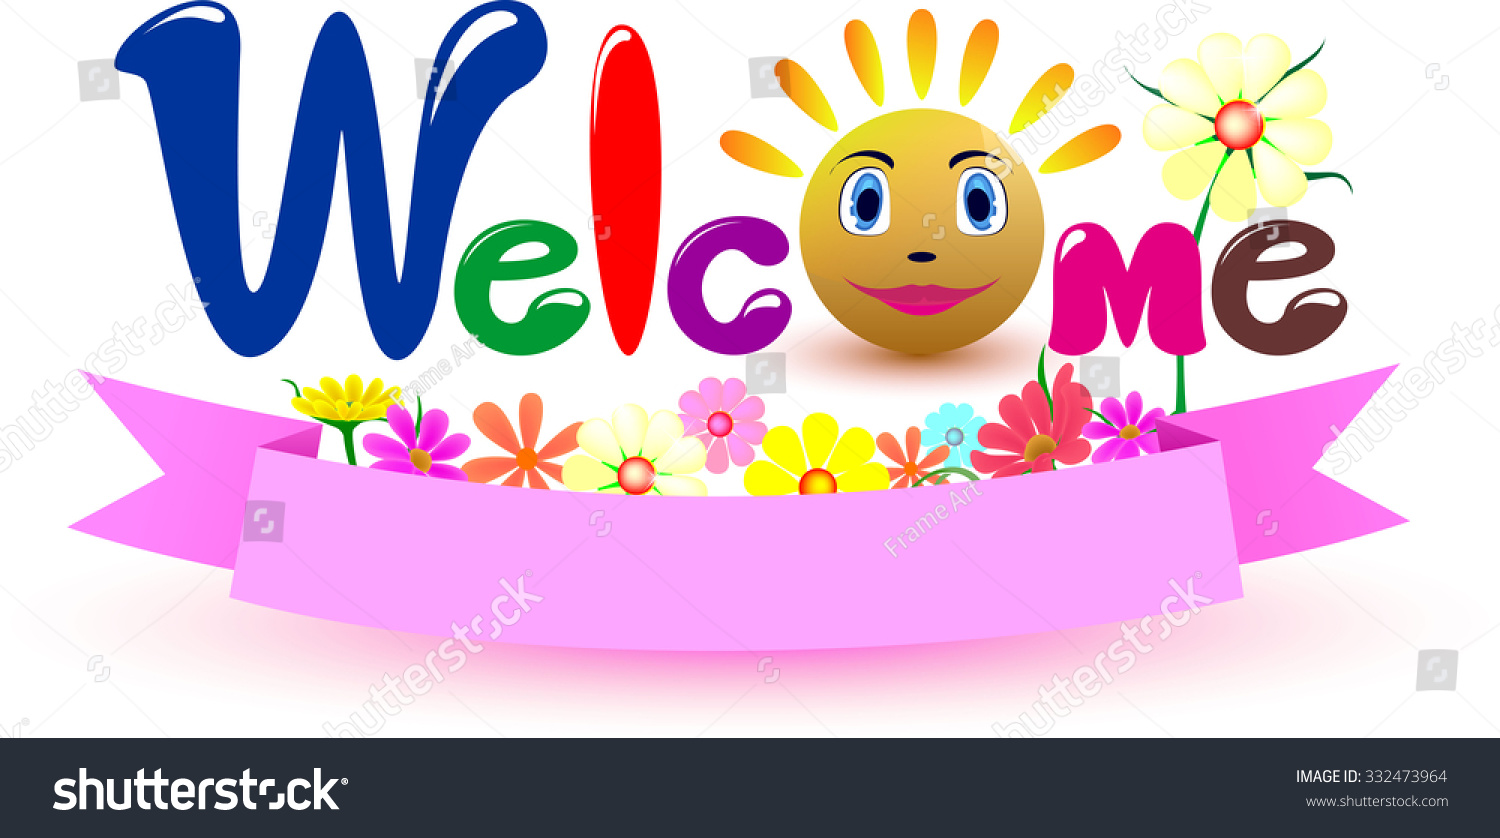 Color art words - Welcome Vector Design Words Design Color Full